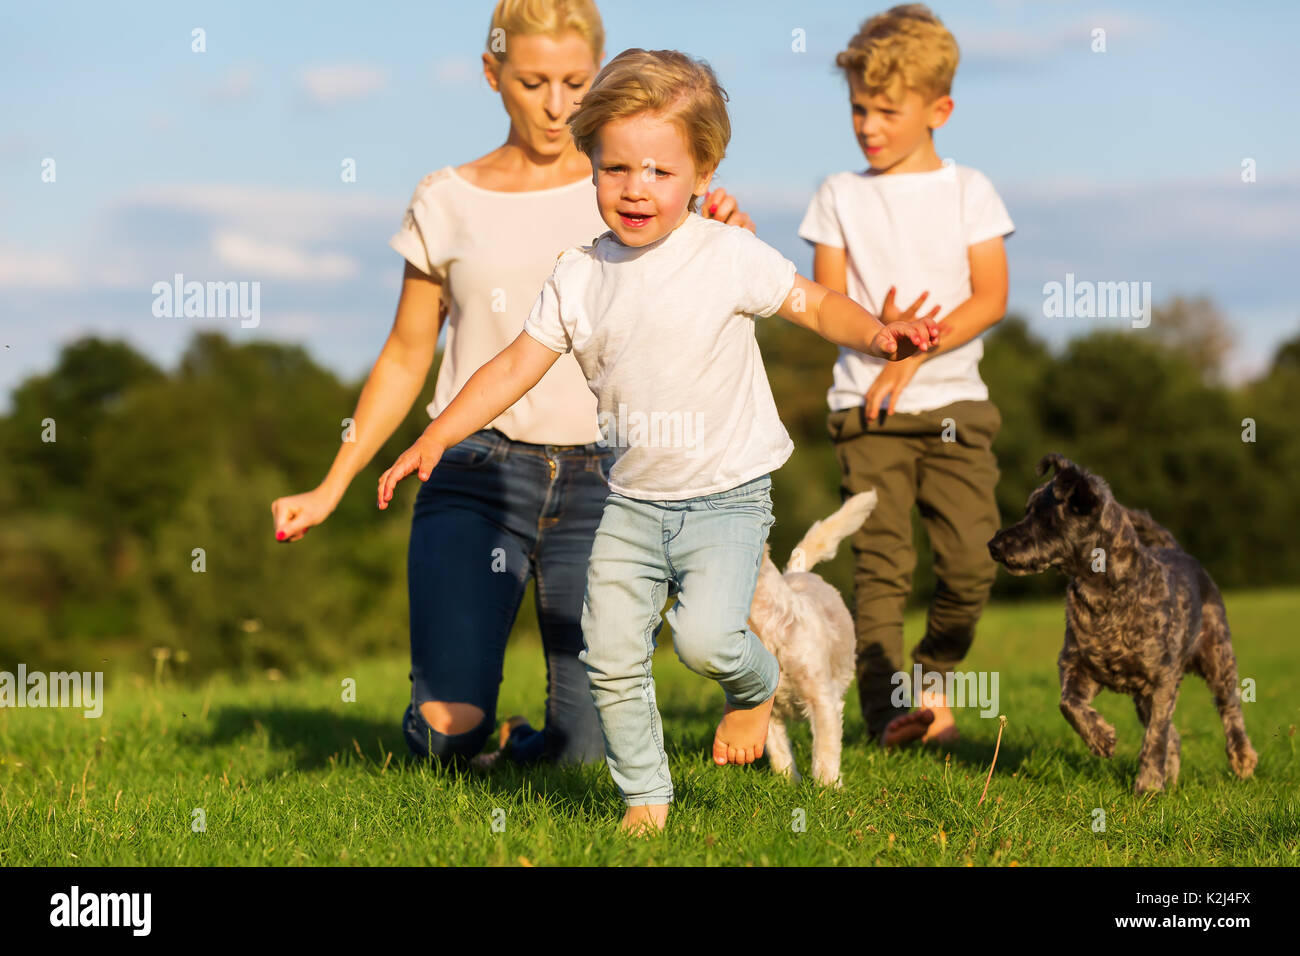 picture of a mother with two children and two small dogs who are playing outdoors - Stock Image